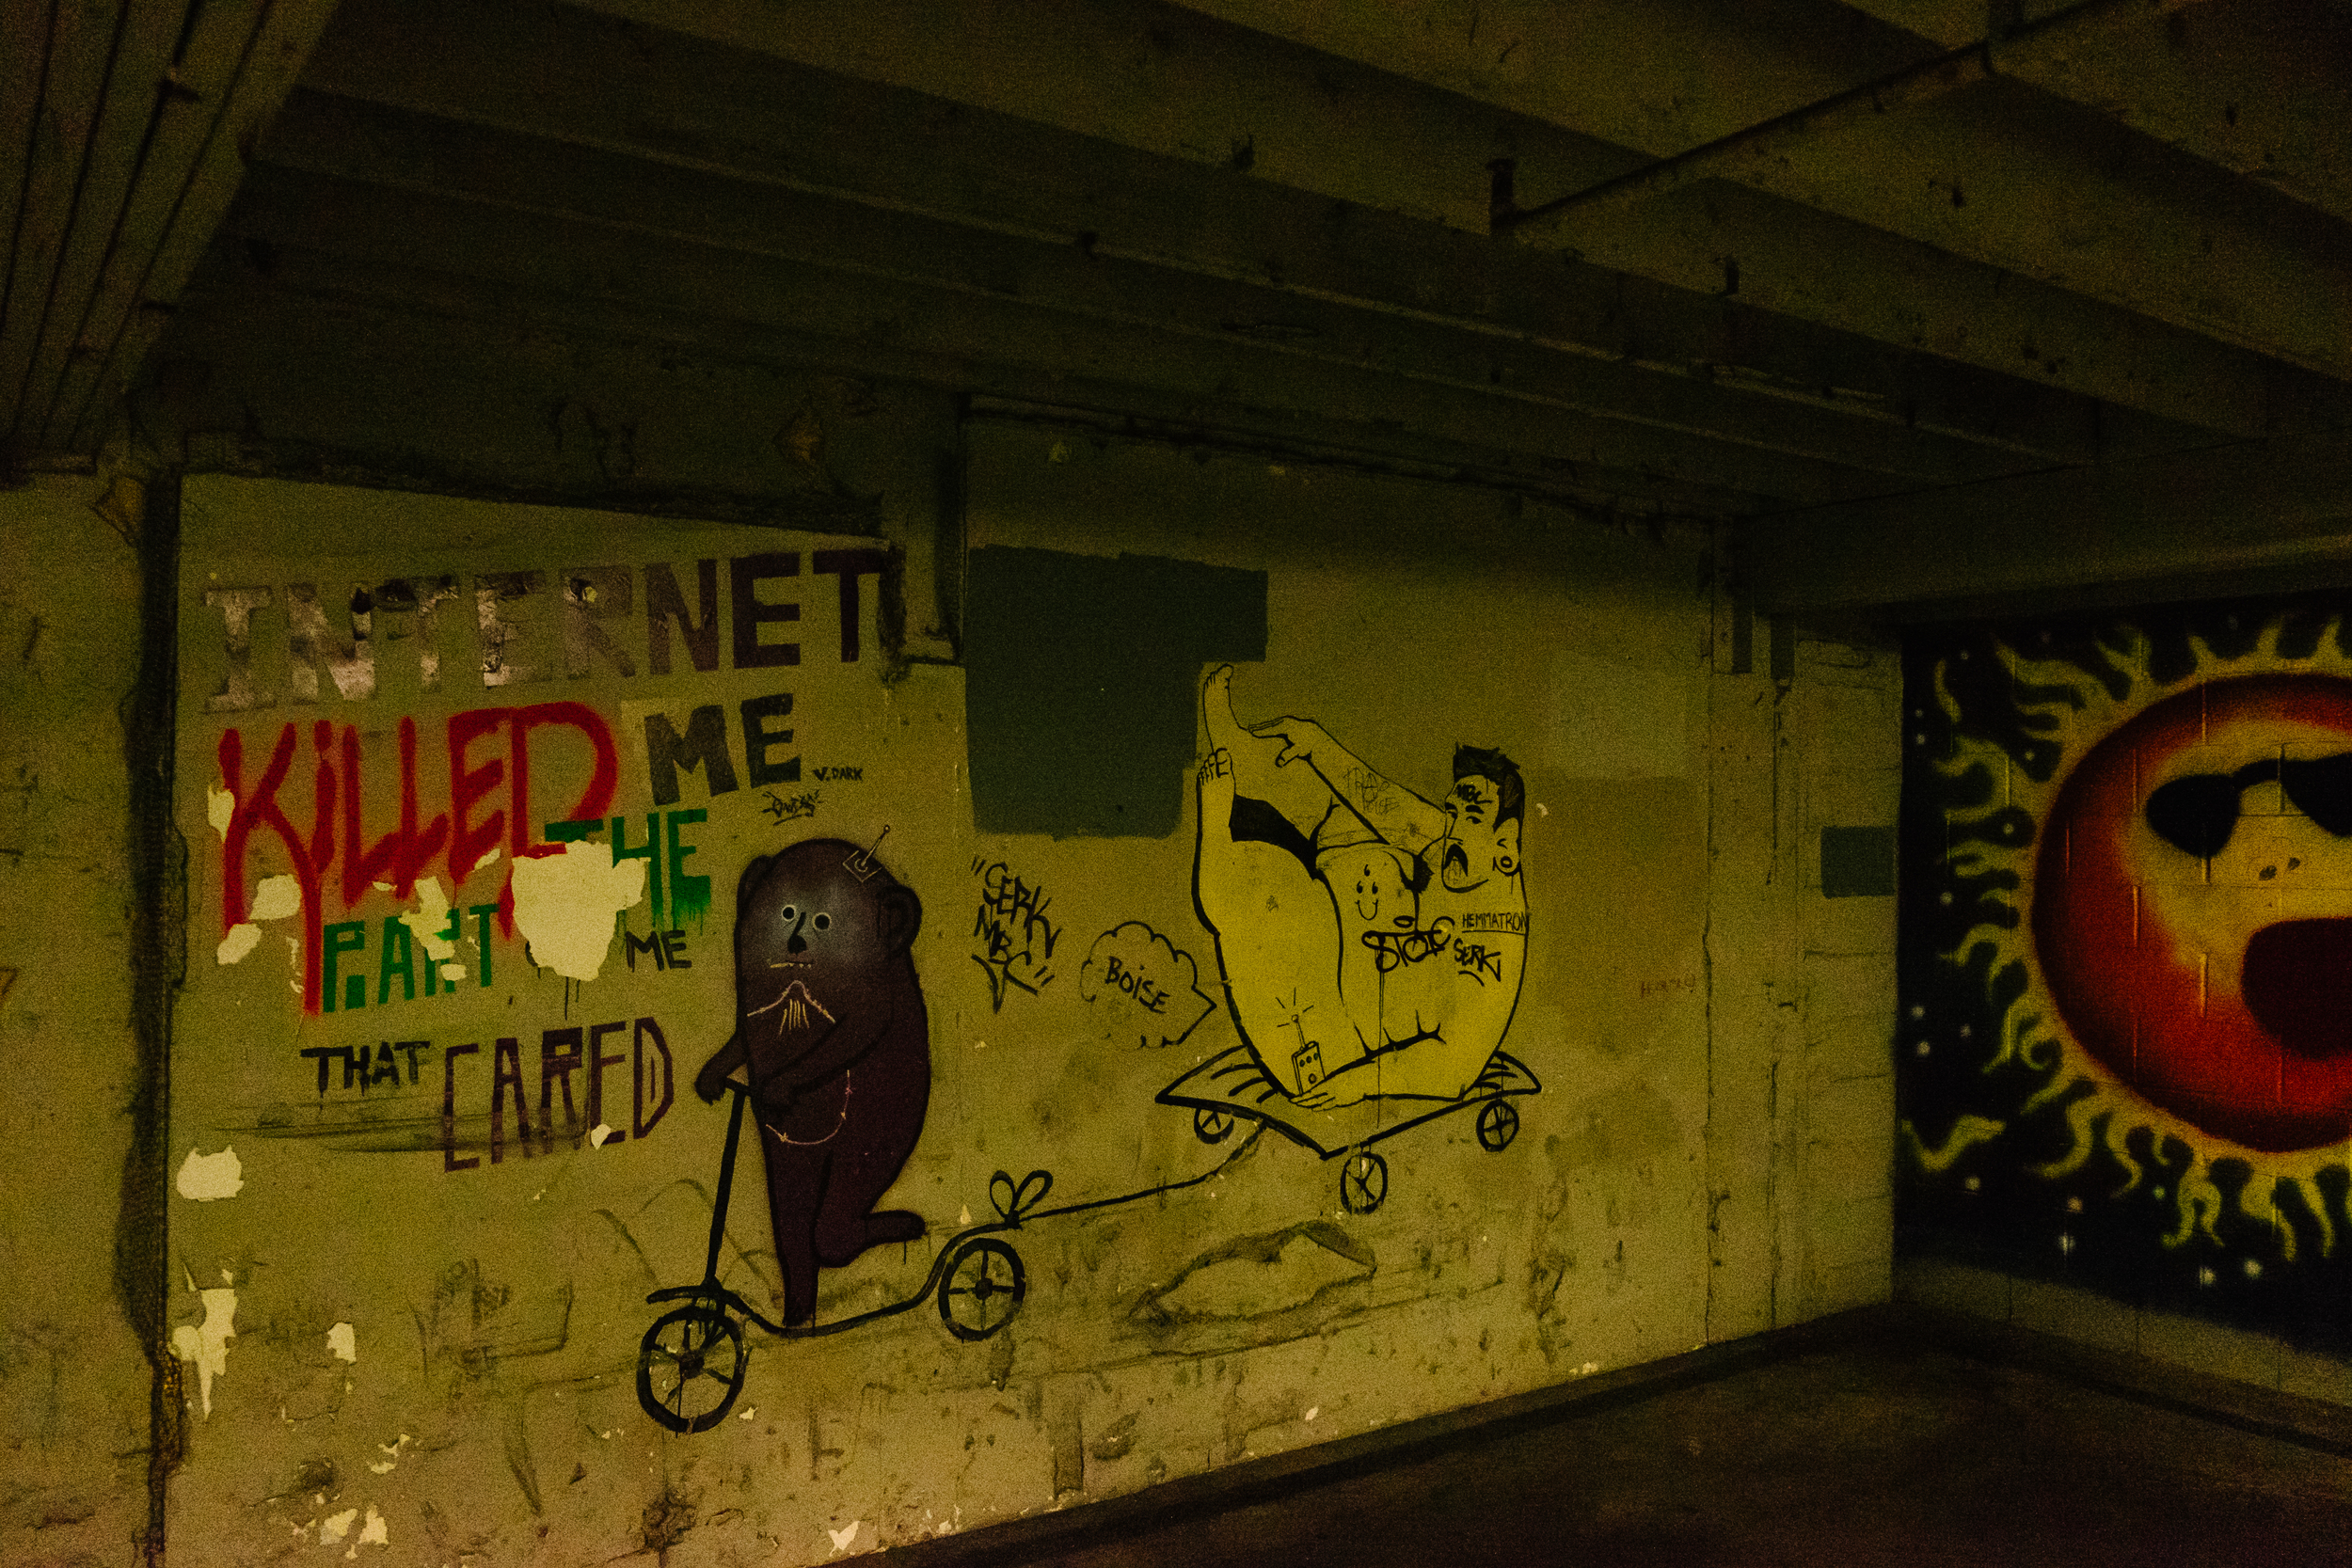 In alleyways or parking garages, there are art decorating the walls creating dazzling displays amongst decay.